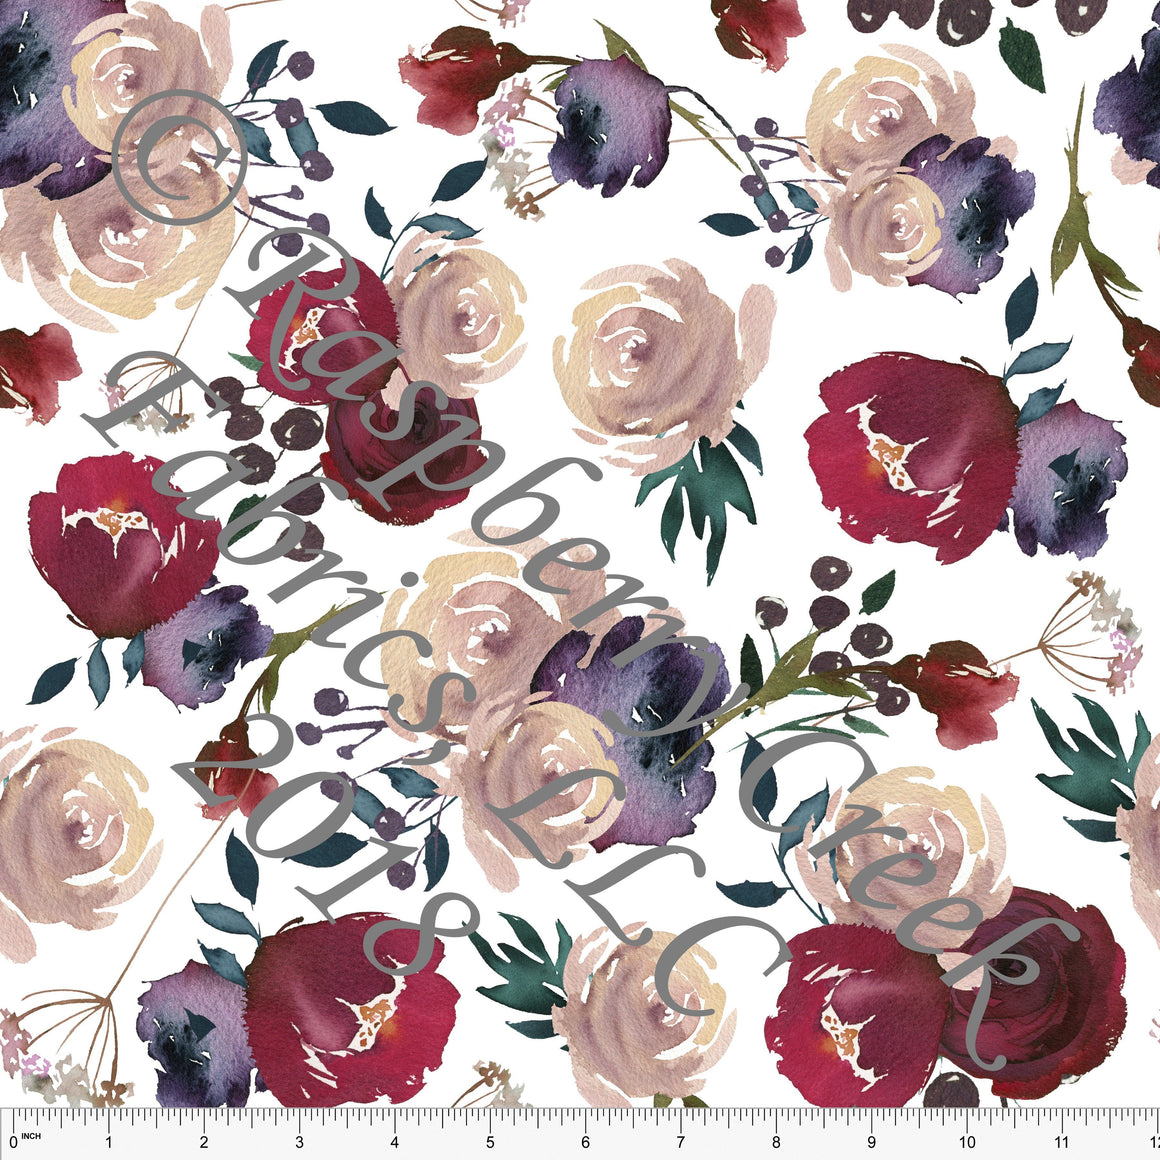 Burgundy Blush Teal and Eggplant Watercolor Floral 4 Way Stretch Jersey Knit Fabric, Retro Greys for Club Fabrics